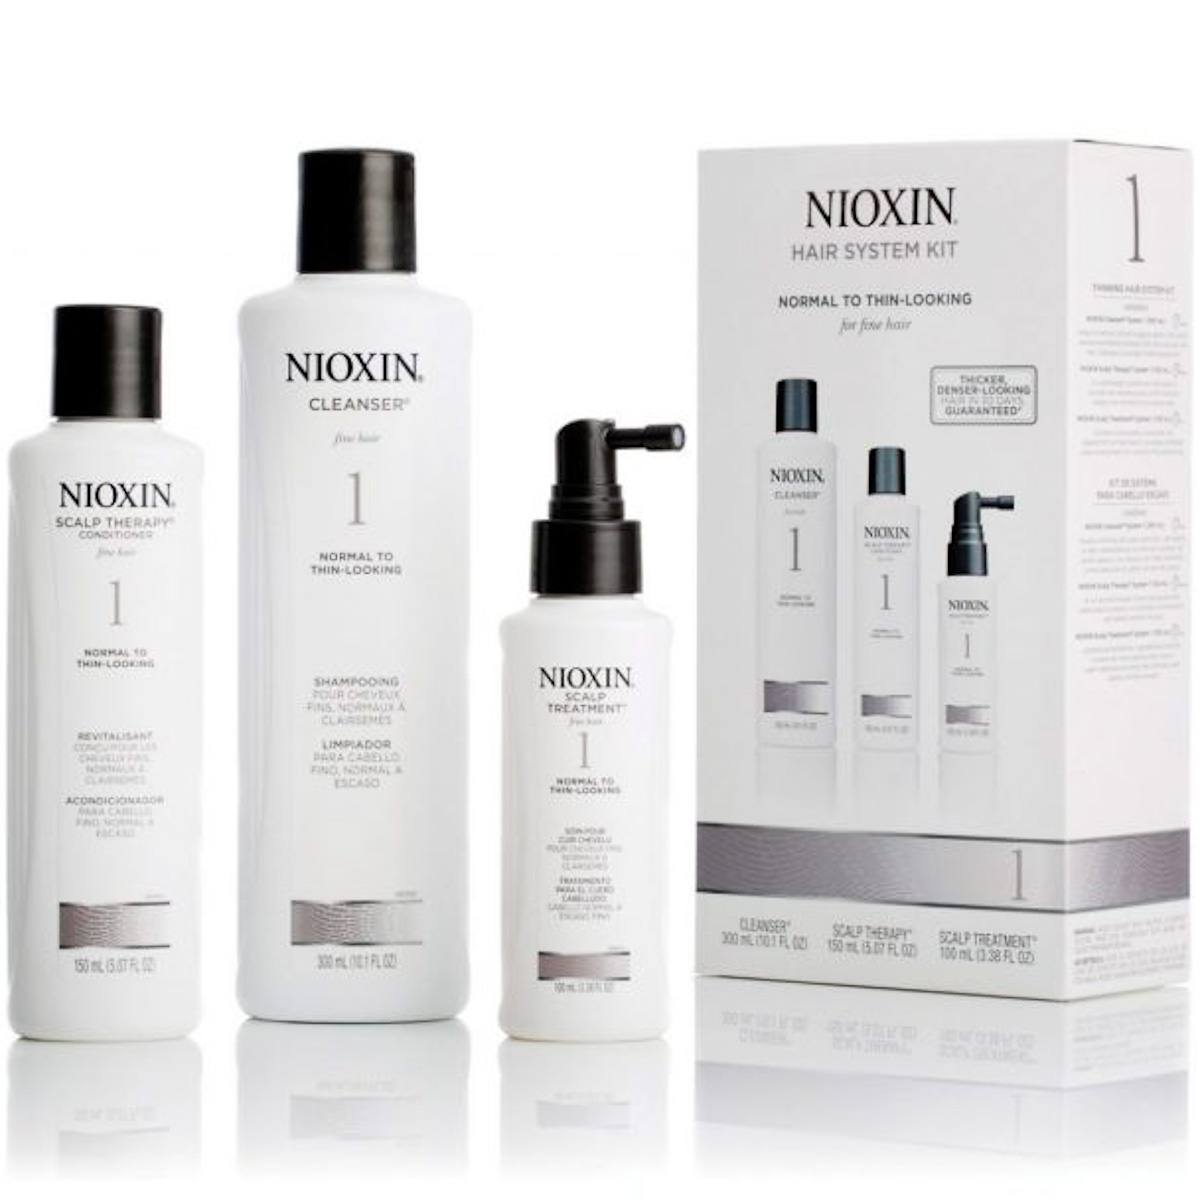 nioxin-system-1-shampoo-grooming-thicker-hair-review-man-for-himself